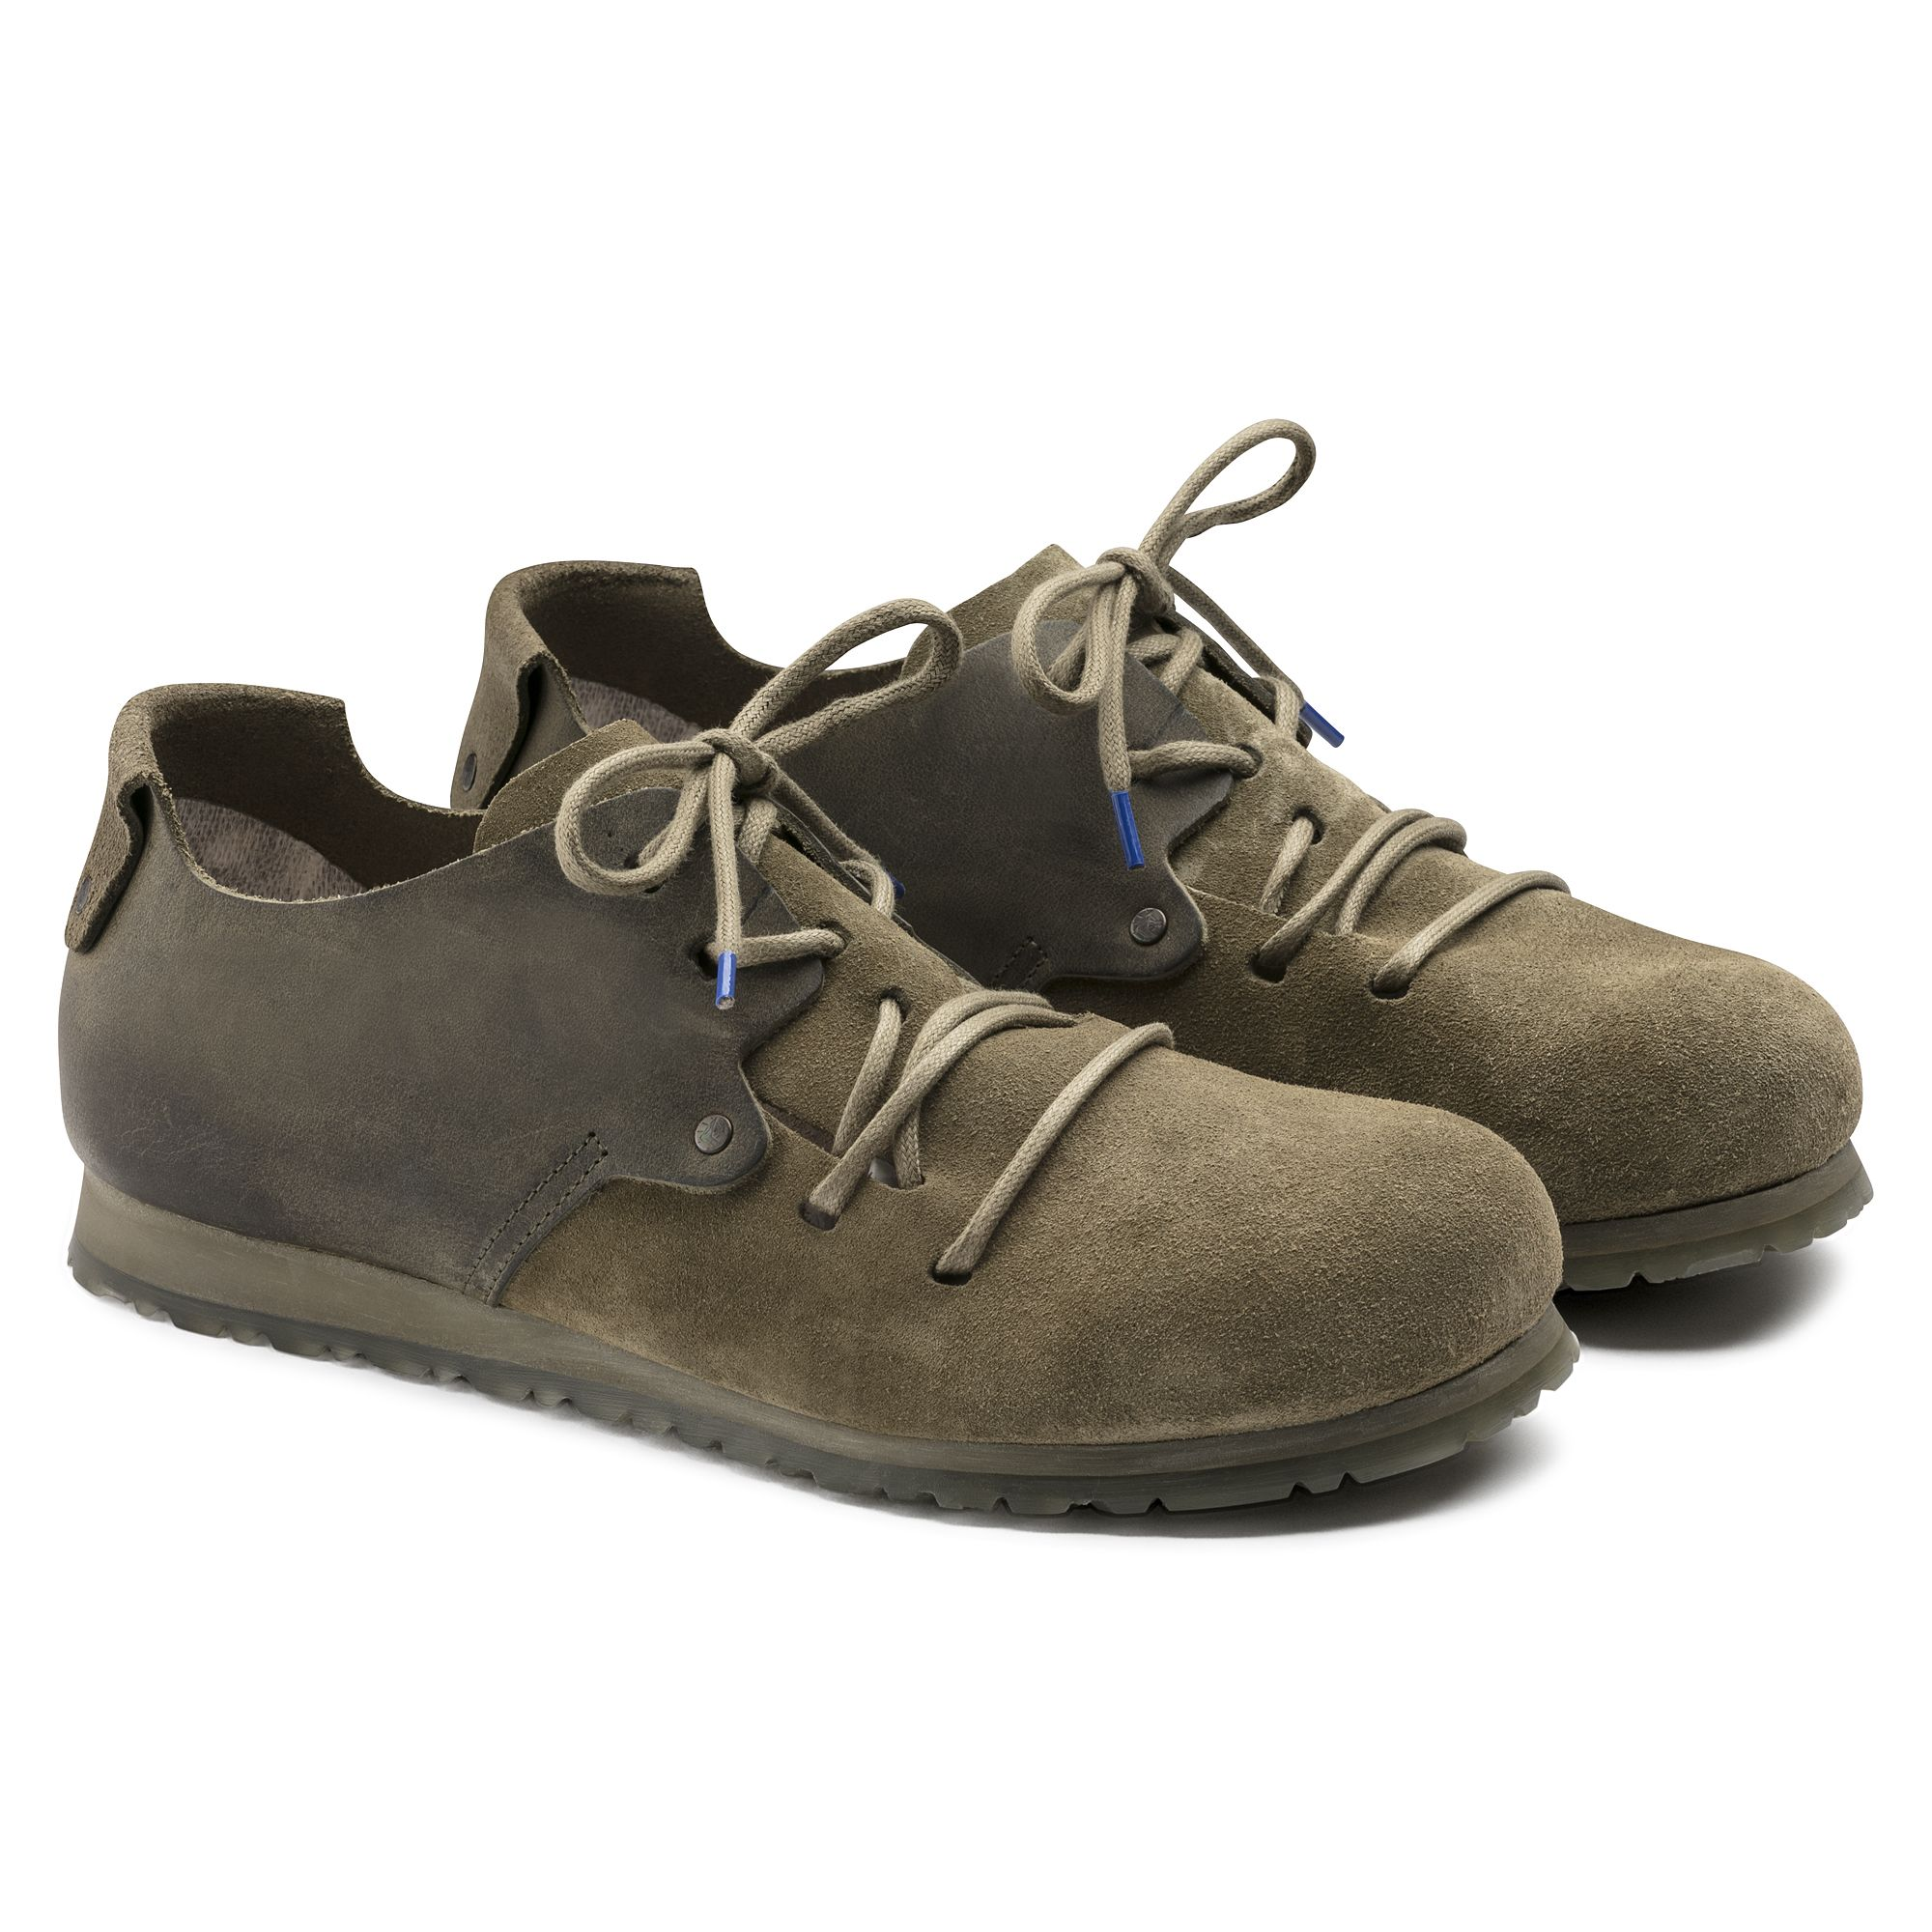 Montana Suede Leather Khaki | Kid shoes, Leather, Suede leather